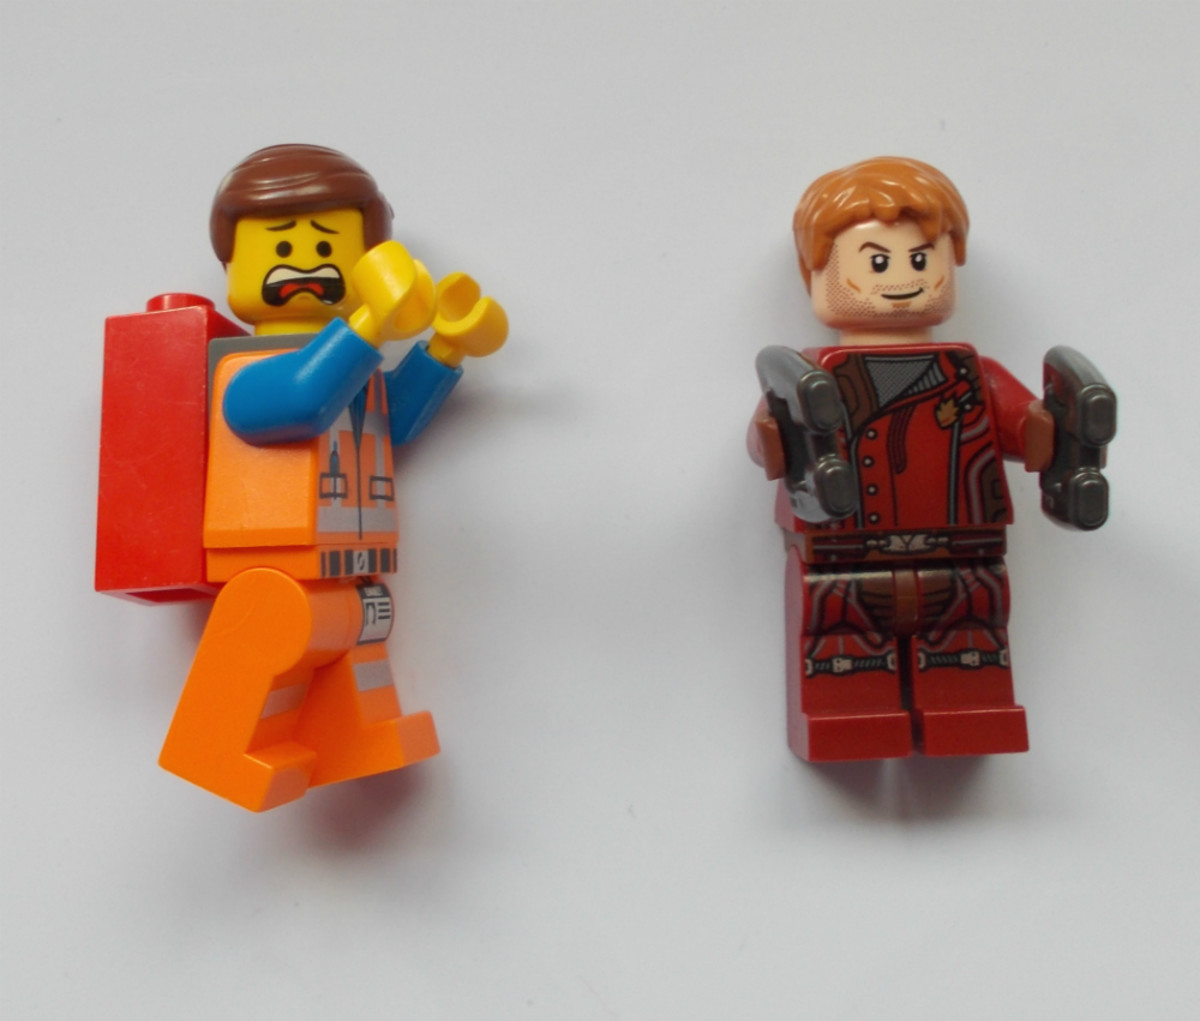 Chris Pratt is in minifigure form as both Emmet and Star-Lord, and has at least one more minifigure on the way.